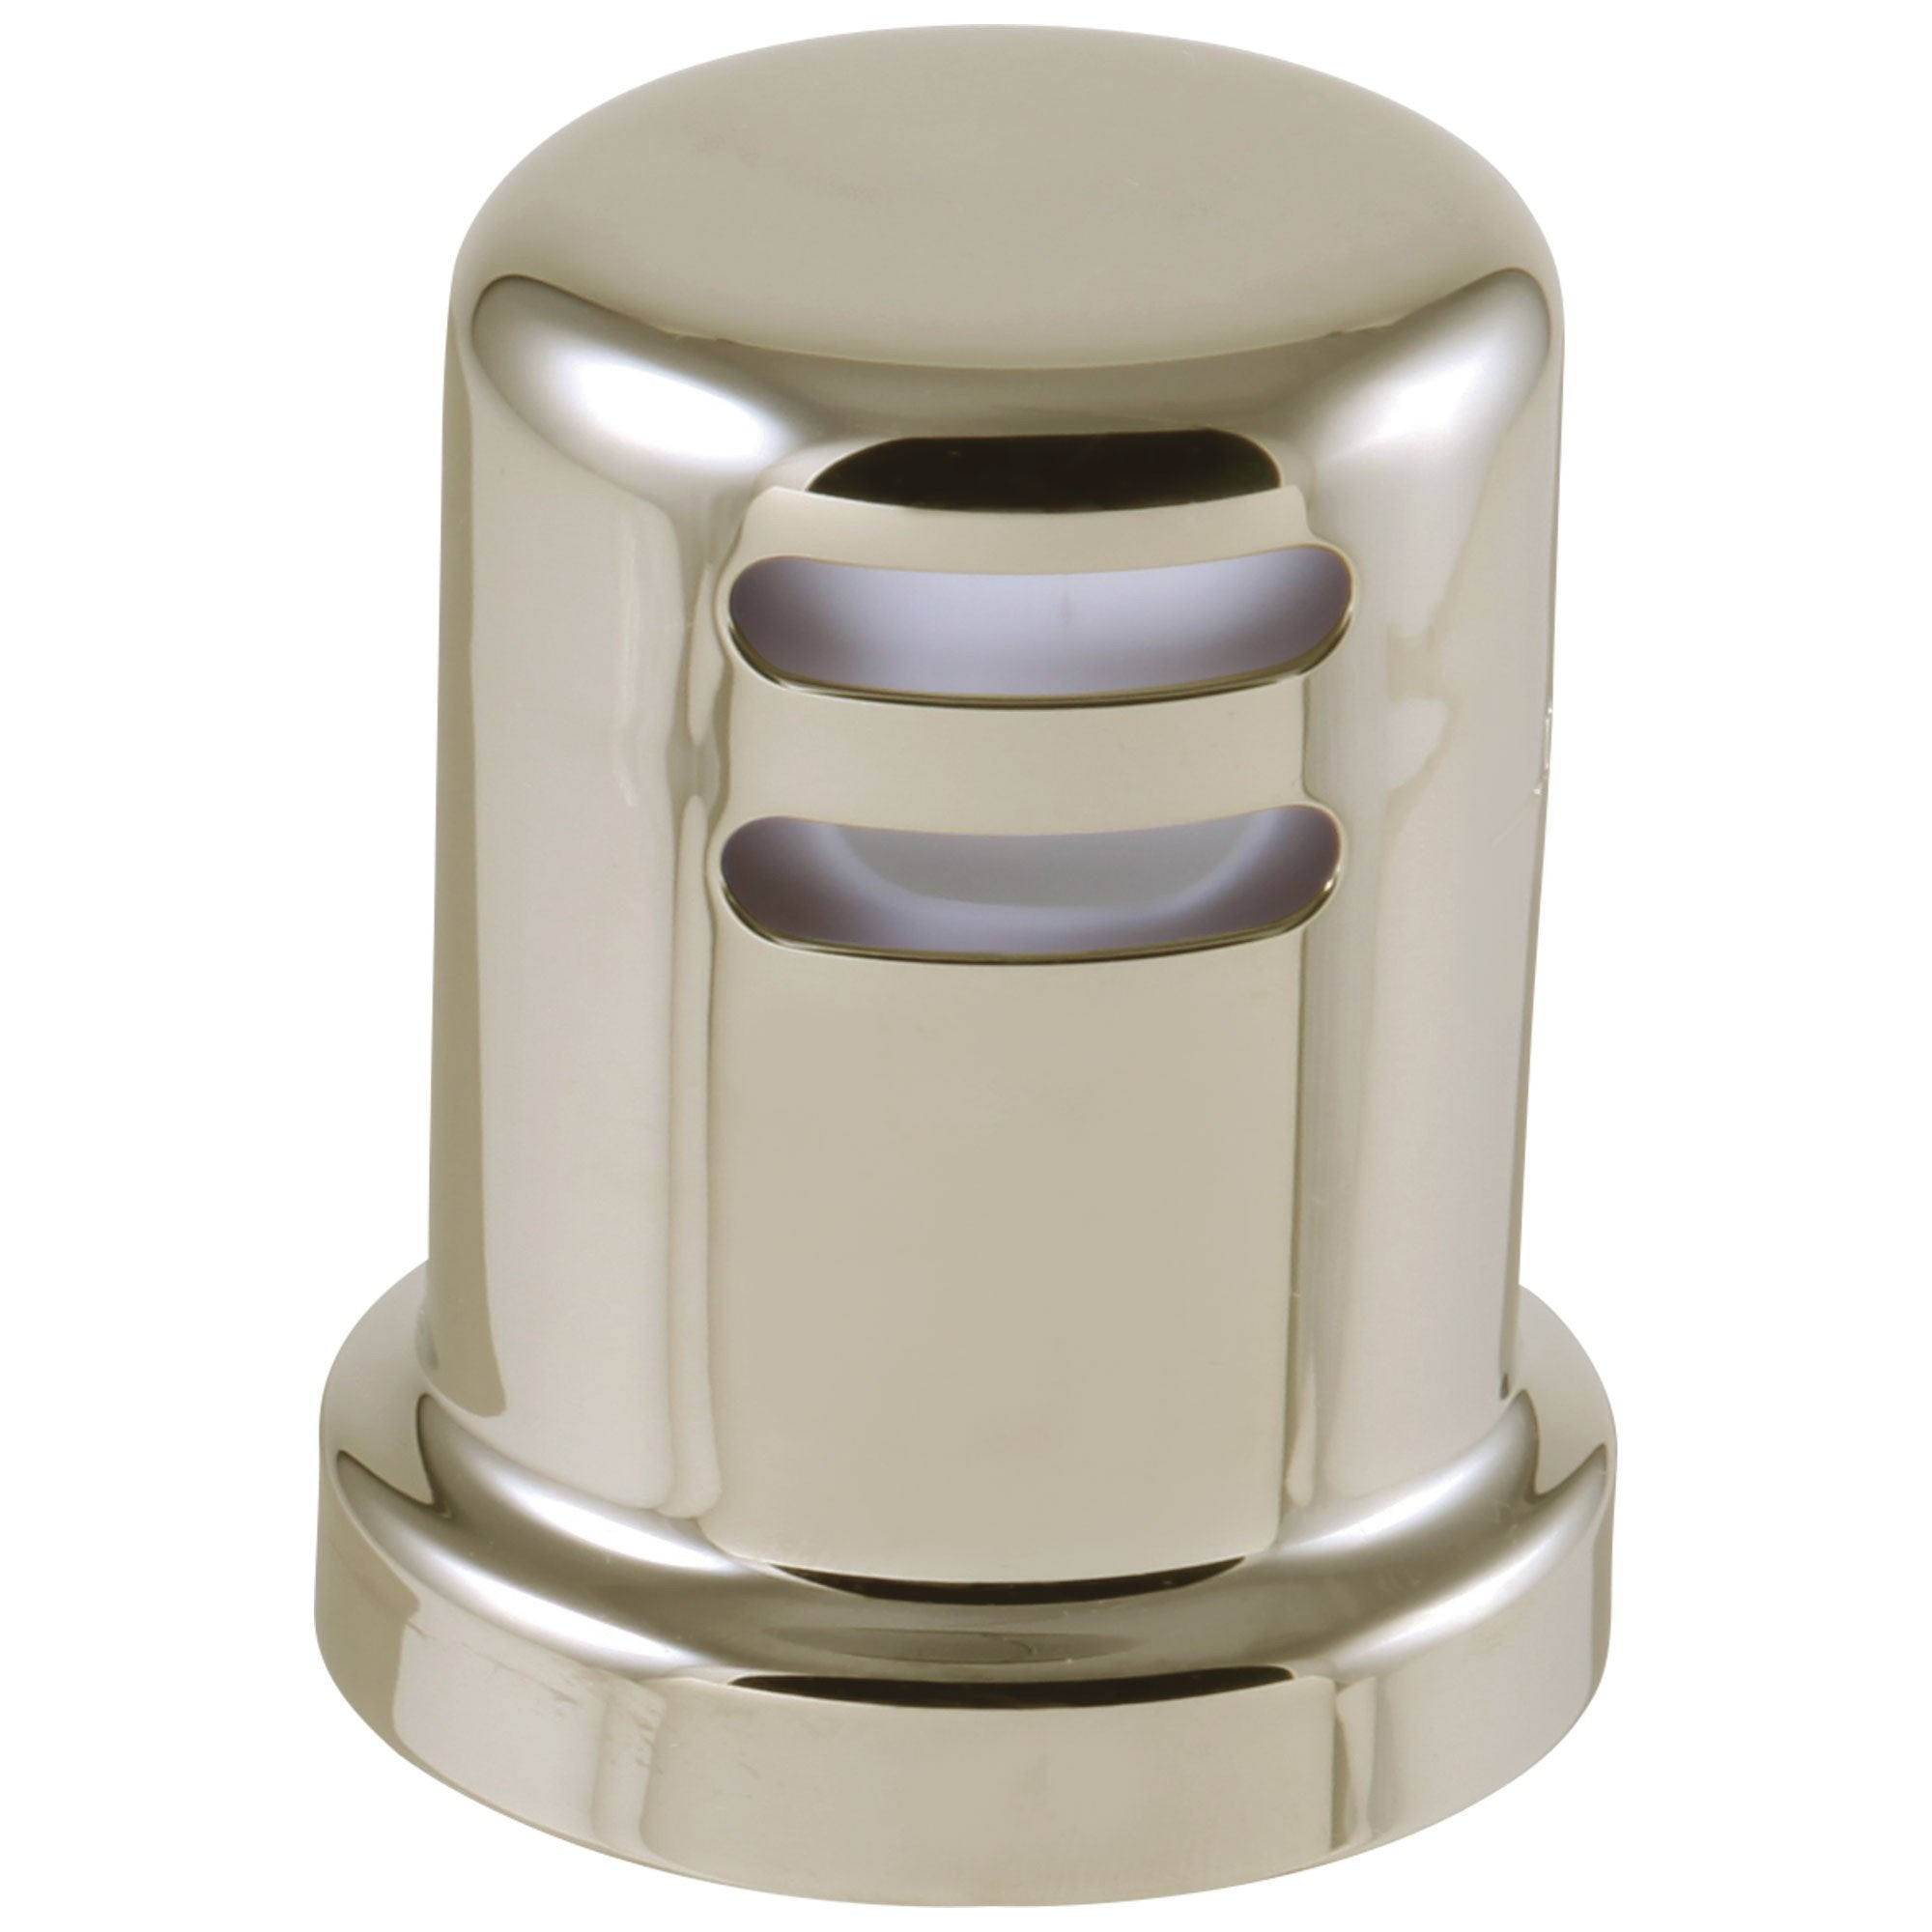 Delta Polished Nickel Finish Kitchen Sink Accessory Dishwasher Air Gap D72020PN